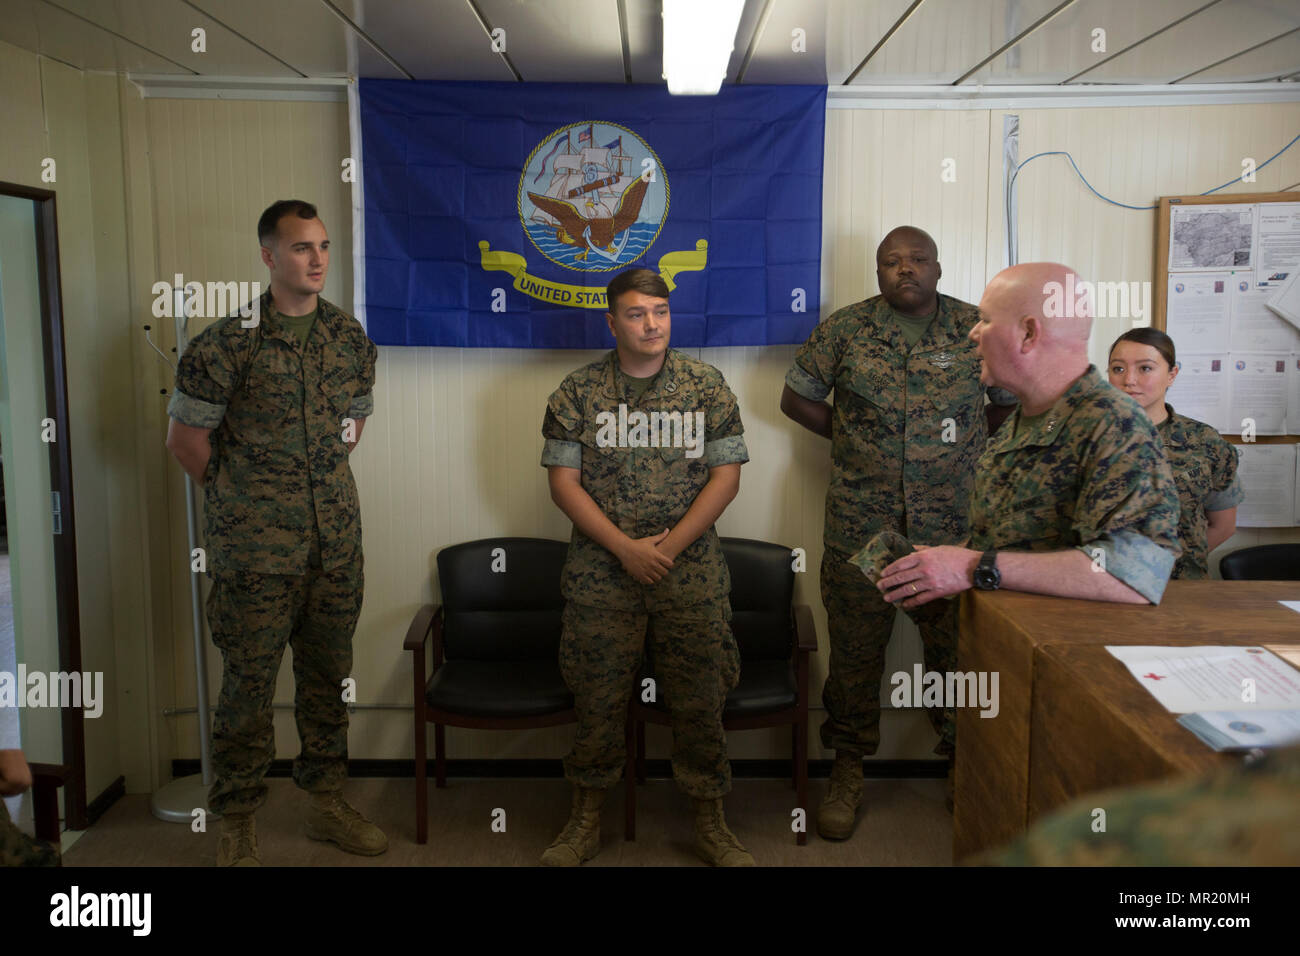 Major Gen. Walter L. Miller Jr., commanding general of II Marine Expeditionary Force, speaks with hospital corpsmen assigned to Special Purpose Marine Air-Ground Task Force-Crisis Response-Africa at Moron Air Base, Spain, April 27, 2017. SPMAGTF-CR-AF deployd to conduct limited crisi response and theater security operations in Europe and North Africa. (U.S. Marine Corps photo by Staff Sgt. Kenneth Trotter) - Stock Image